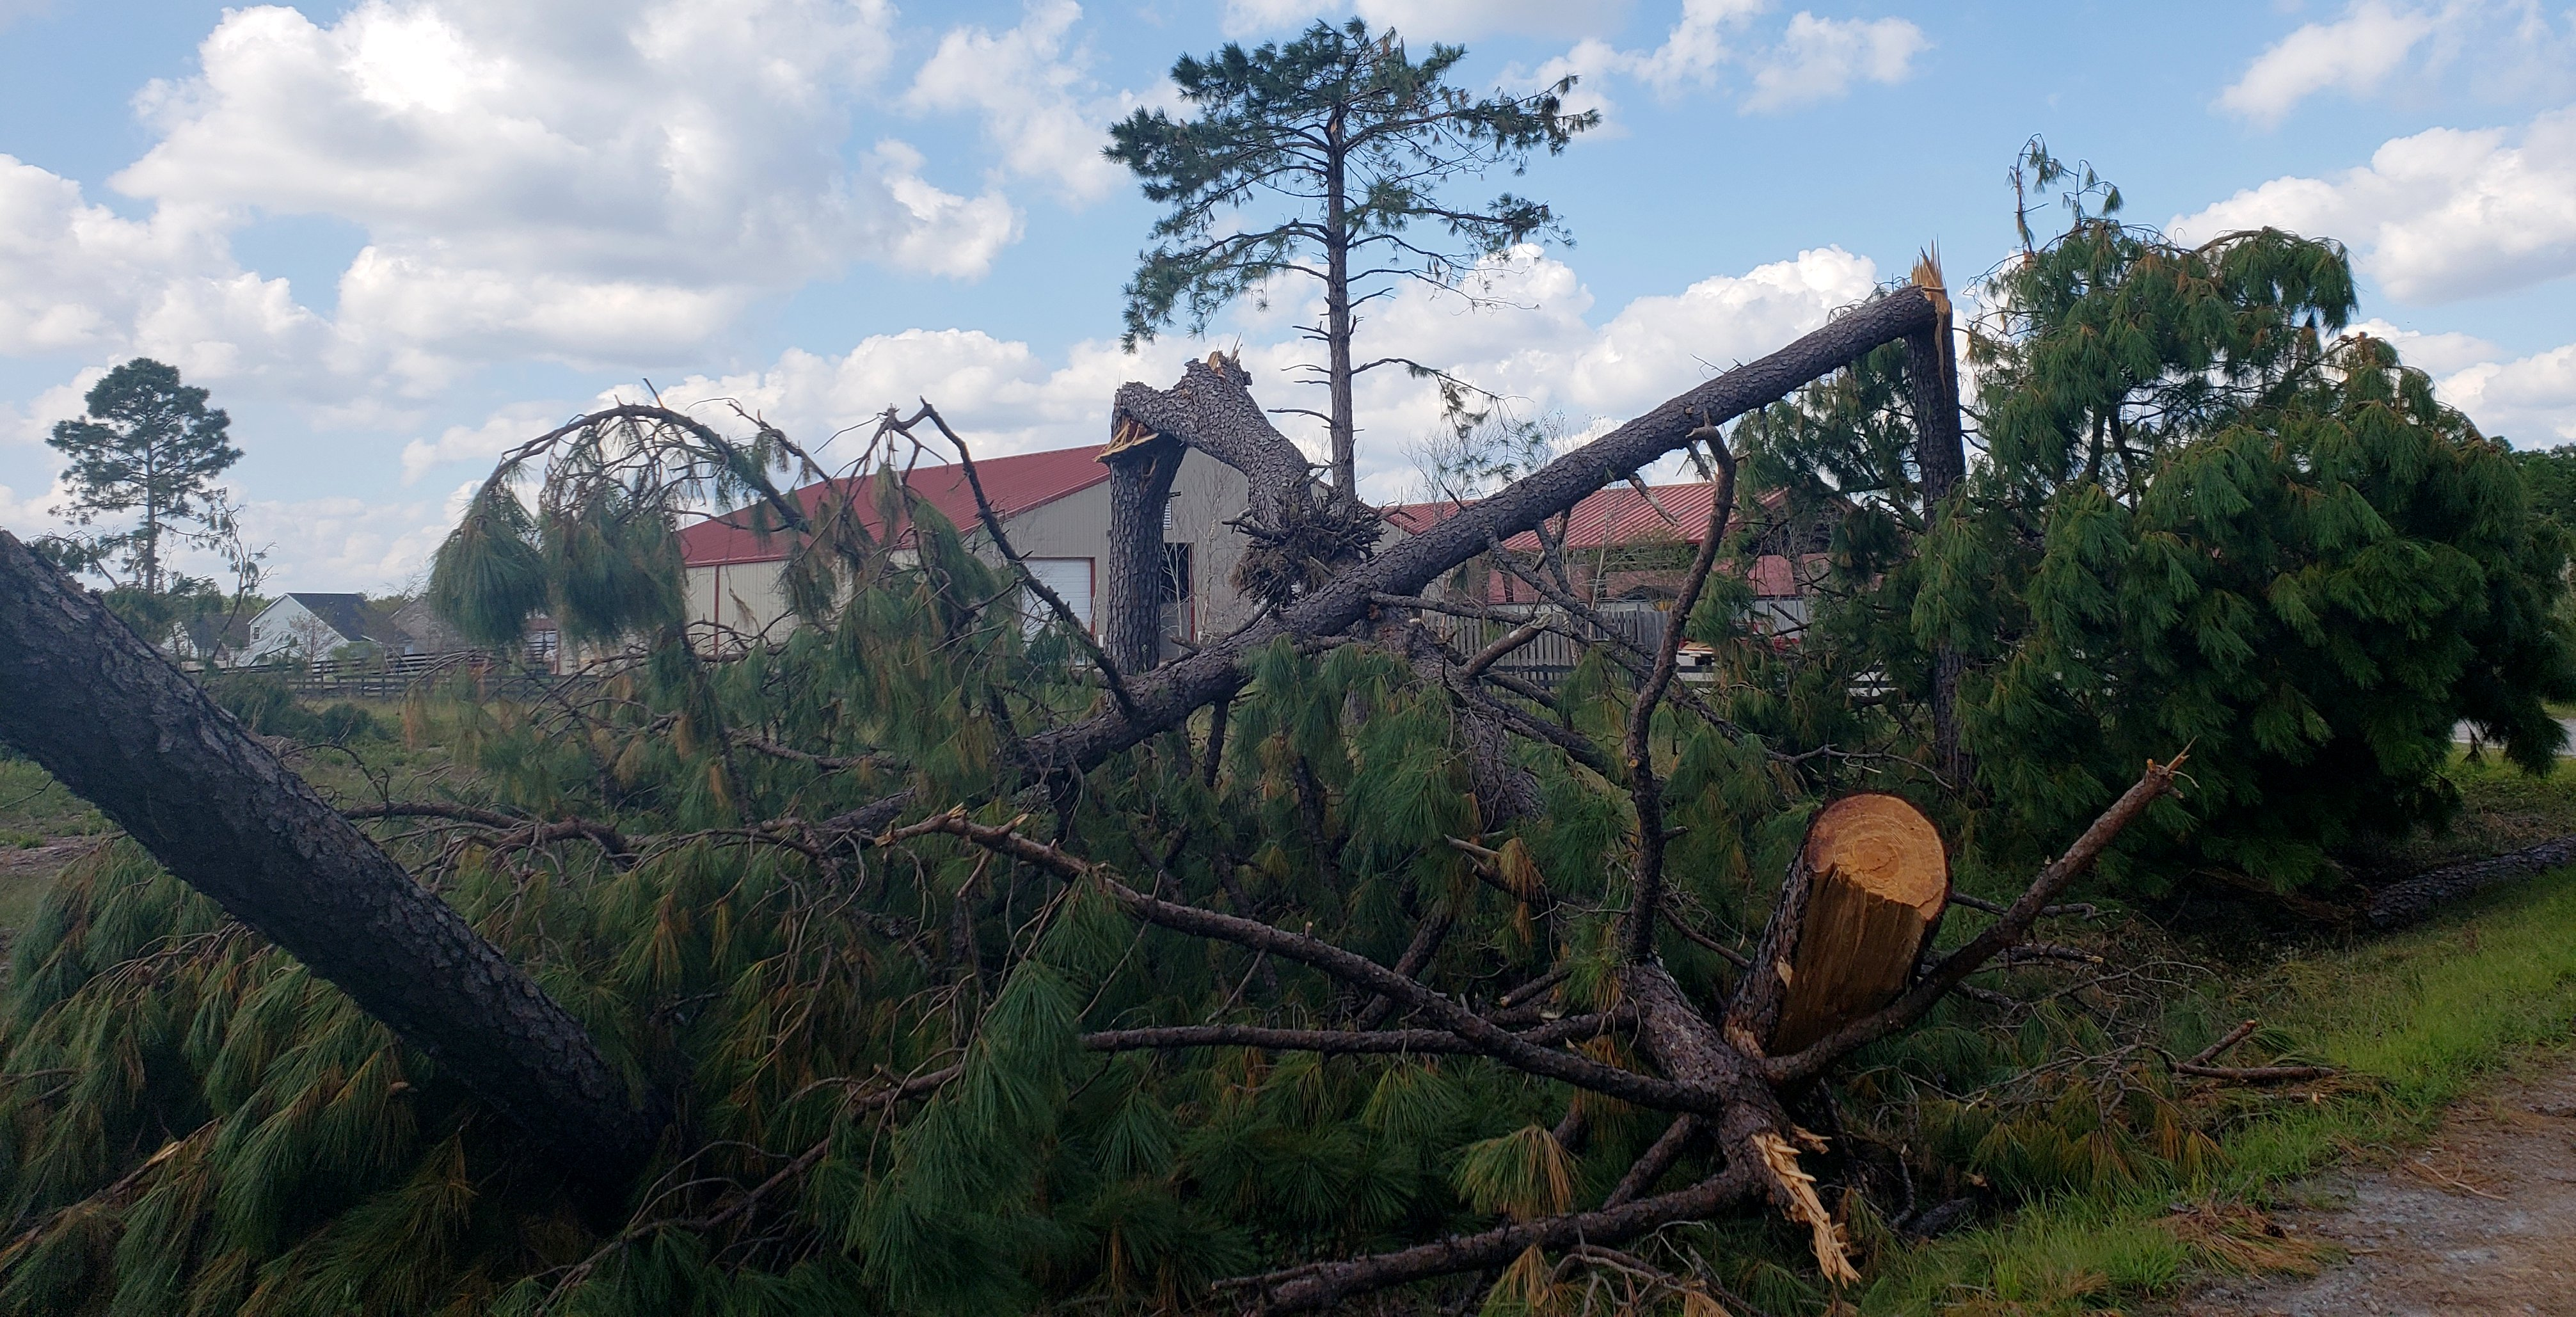 Additional damage to trees from the Bayshore tornado on Sept 15, 2018. (Photo credit: NWS)